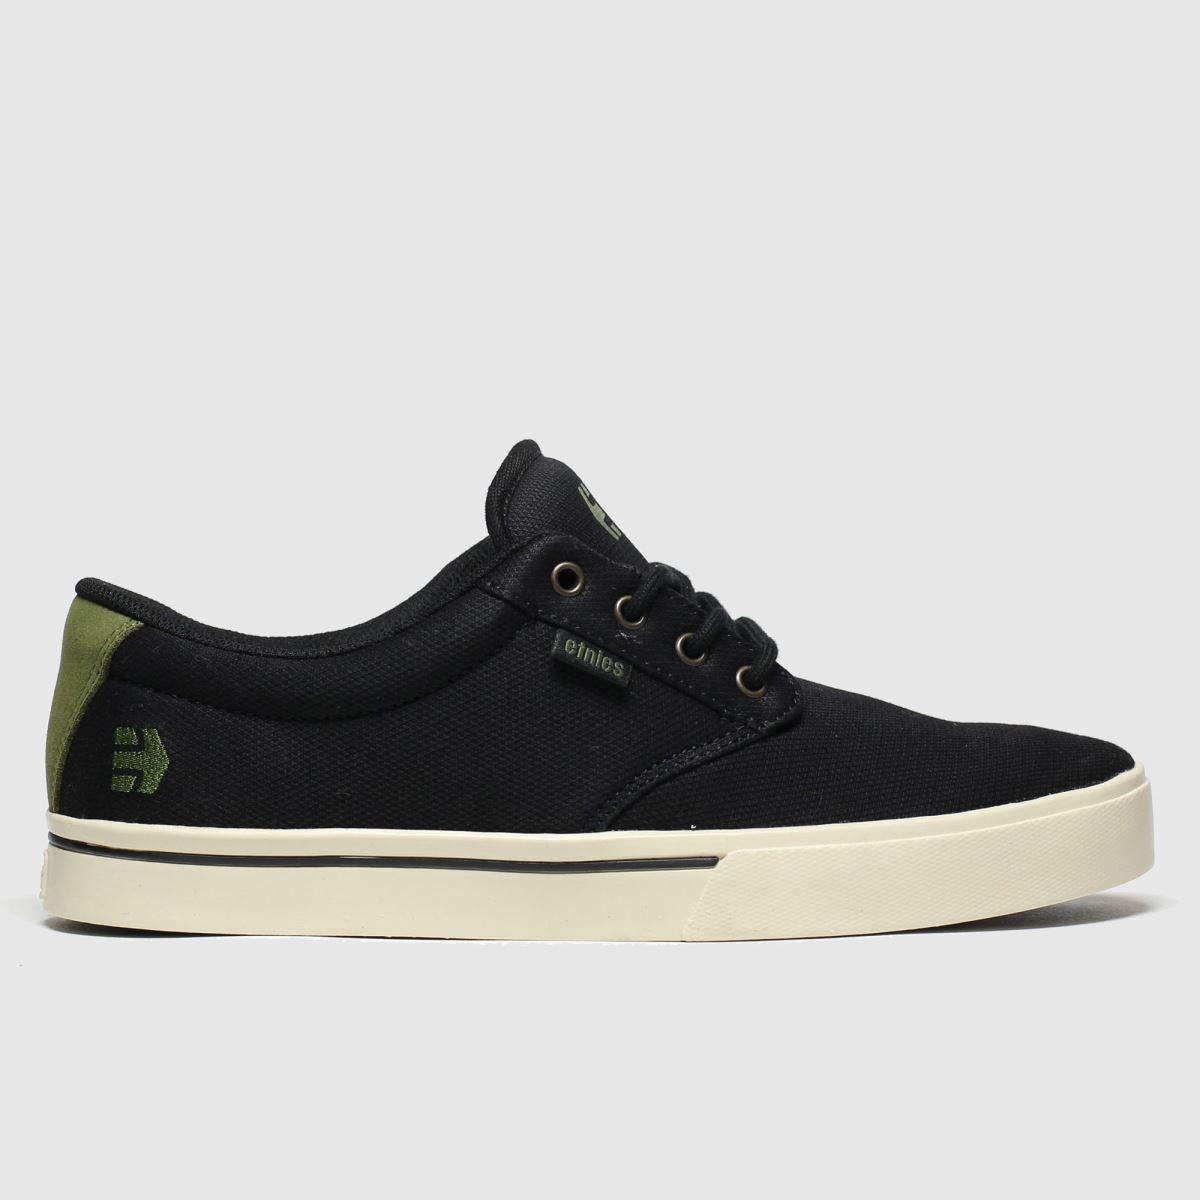 Etnies Etnies Black & White Jameson 2 Eco Trainers